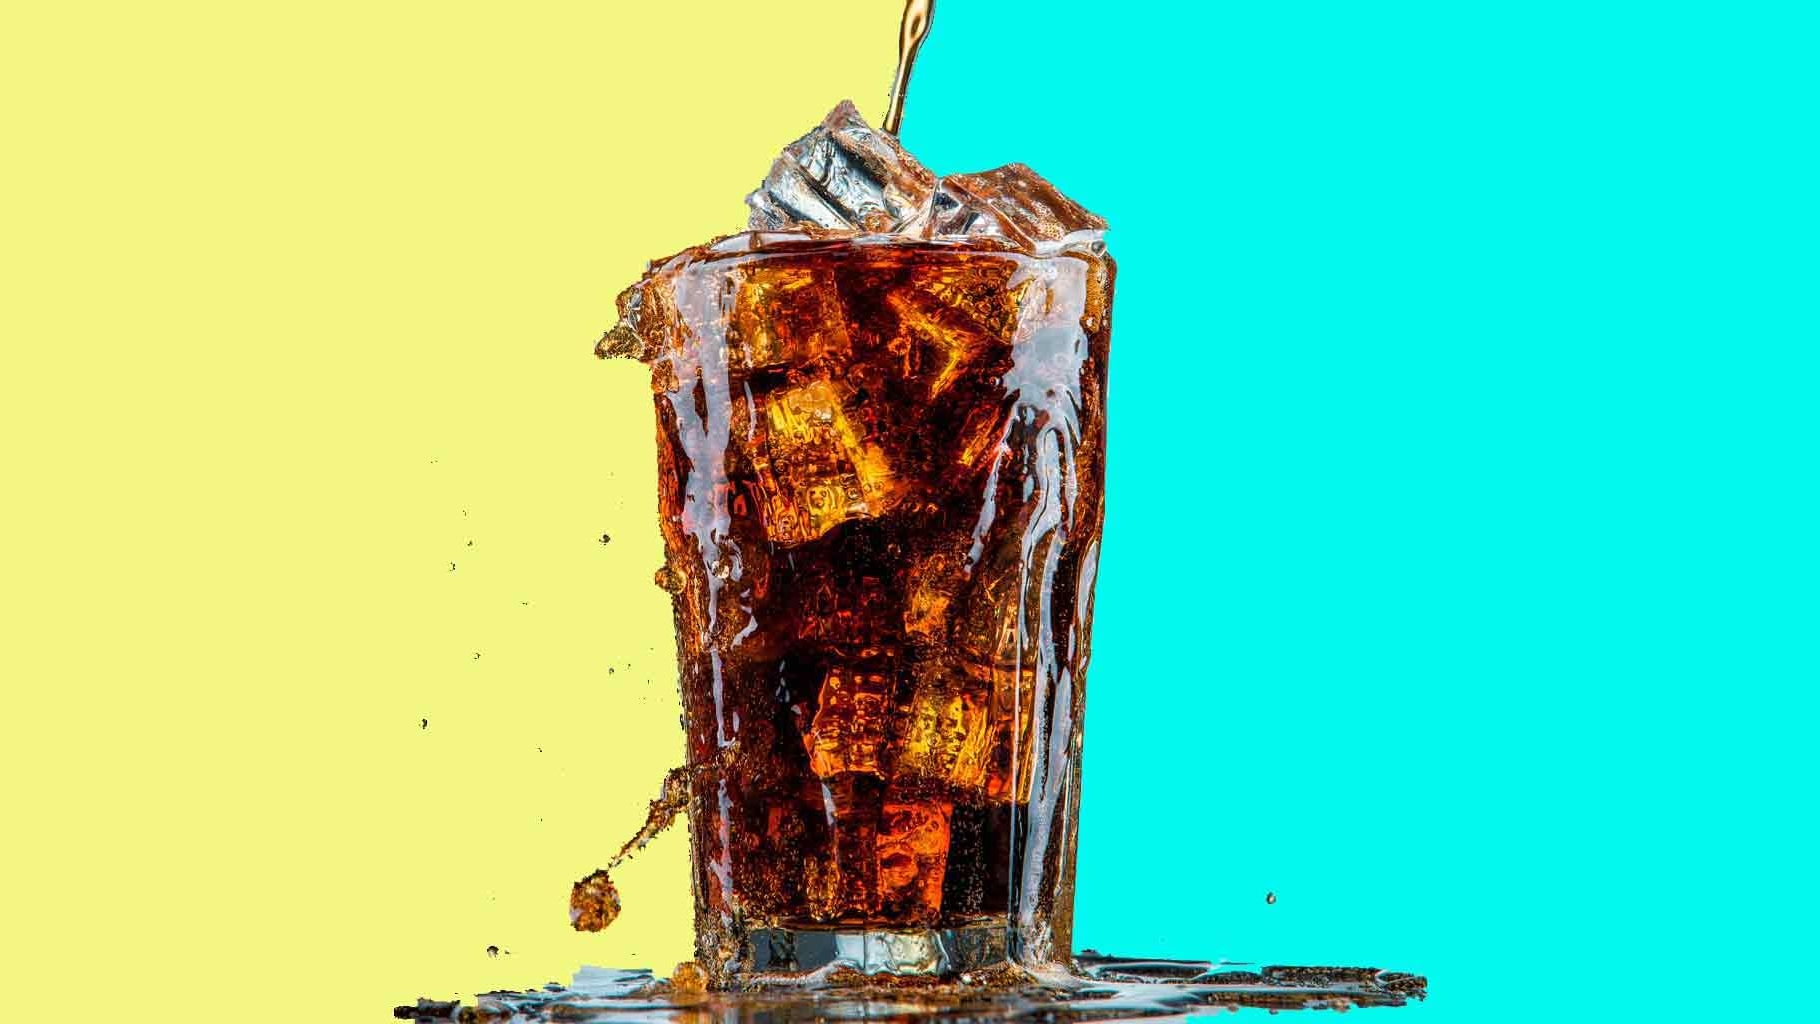 Sugary Drinks Up Risk of Cardiovascular Diseases: Study